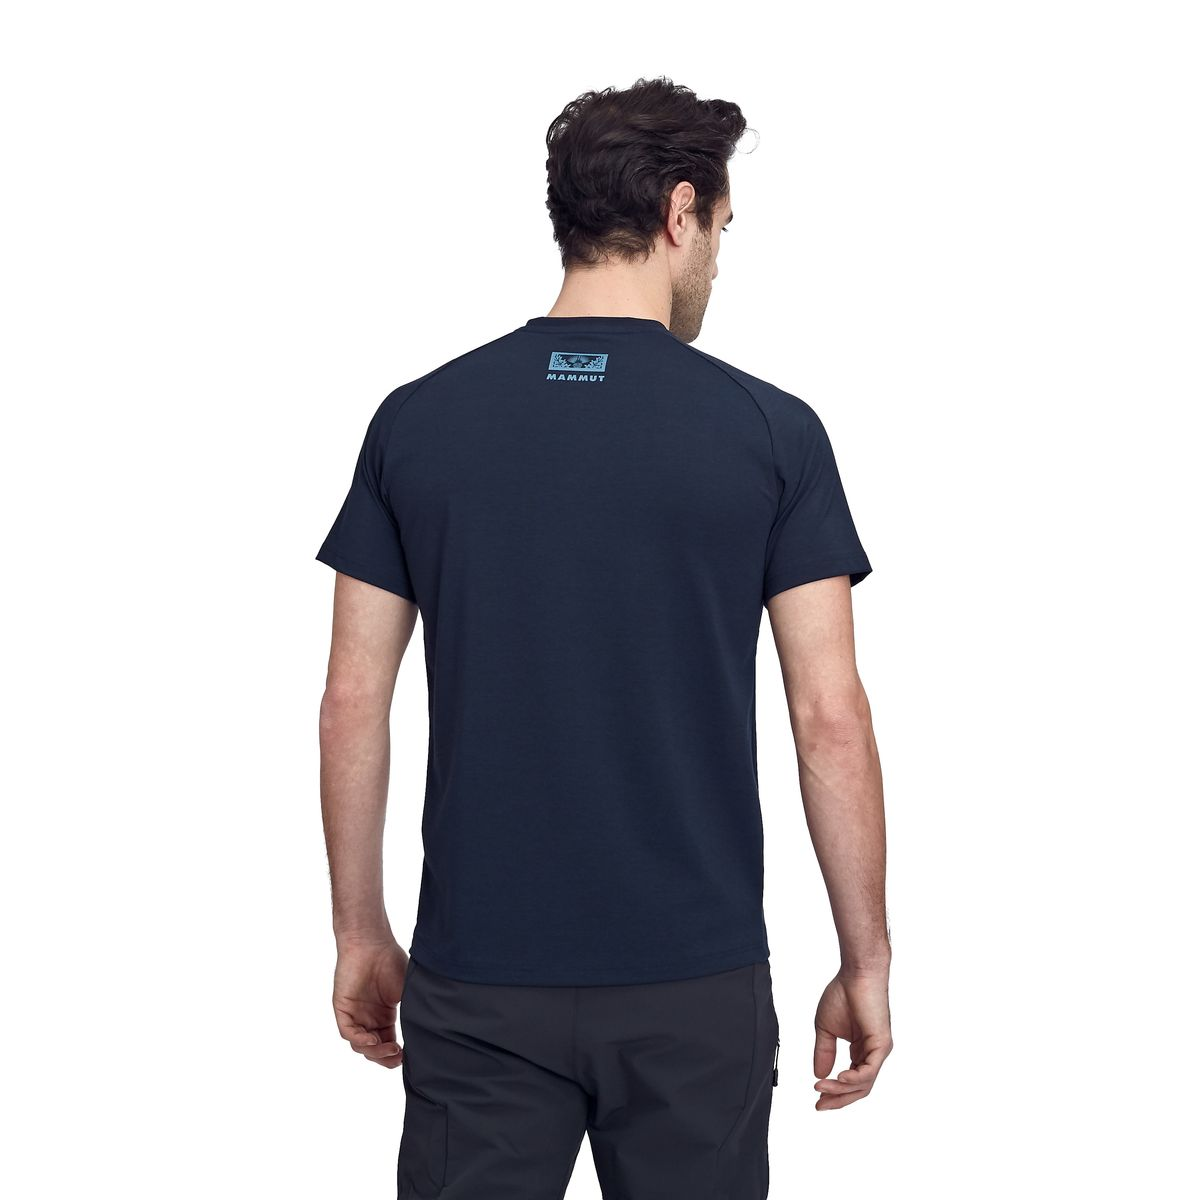 Mammut 短袖排汗衣 Mountain T-Shirt